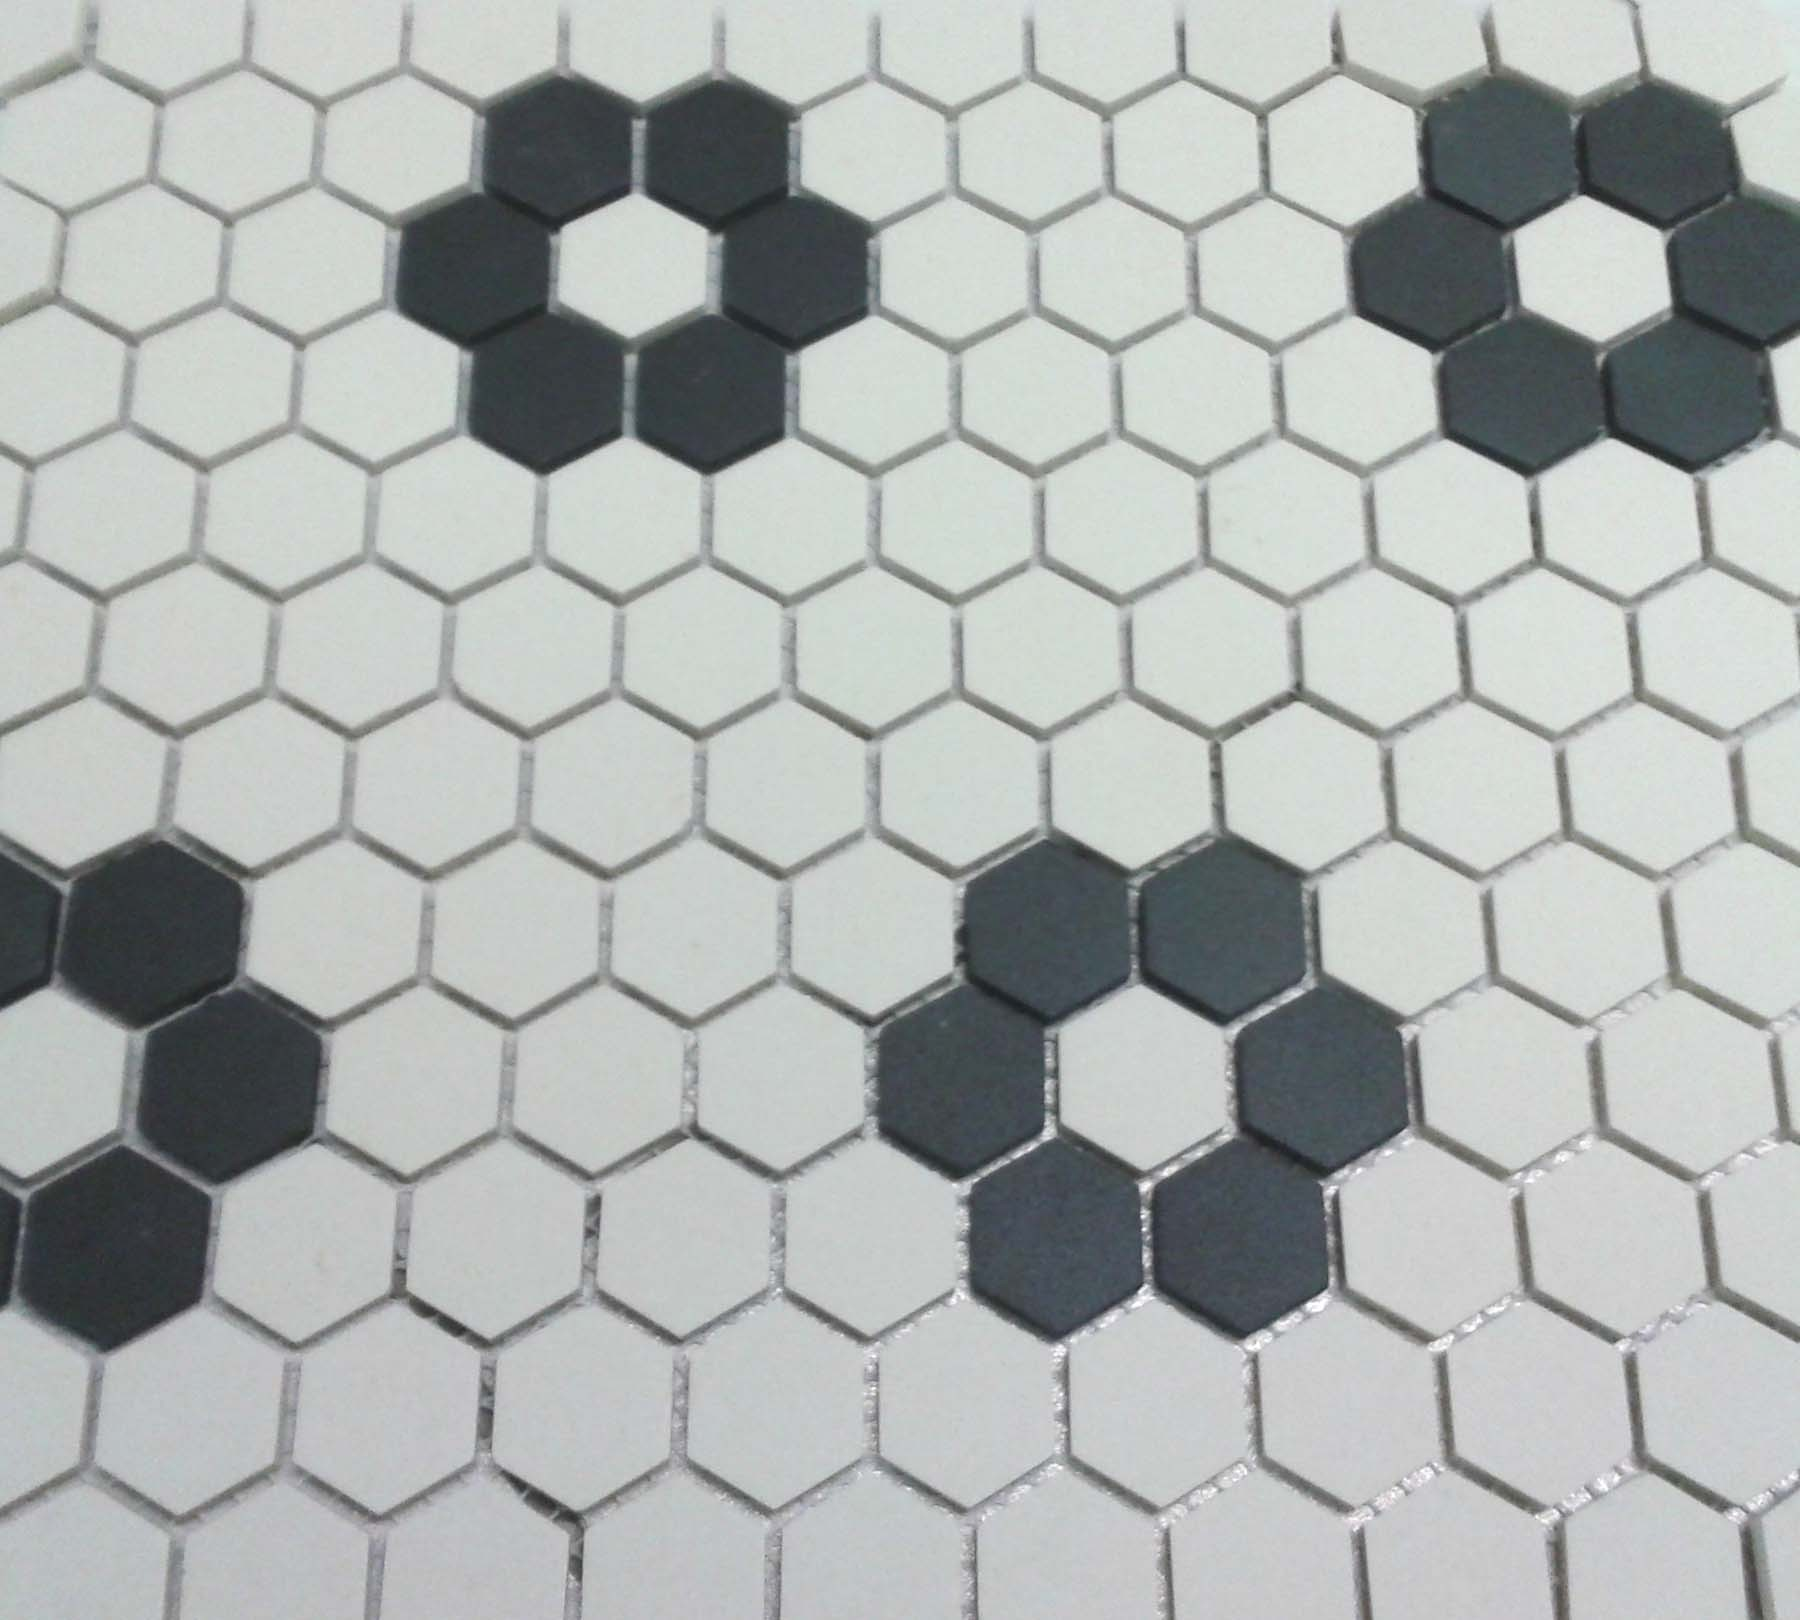 Standard Tub Size And Other Important Aspects Of The Bathroom: 40 Wonderful Pictures And Ideas Of 1920s Bathroom Tile Designs